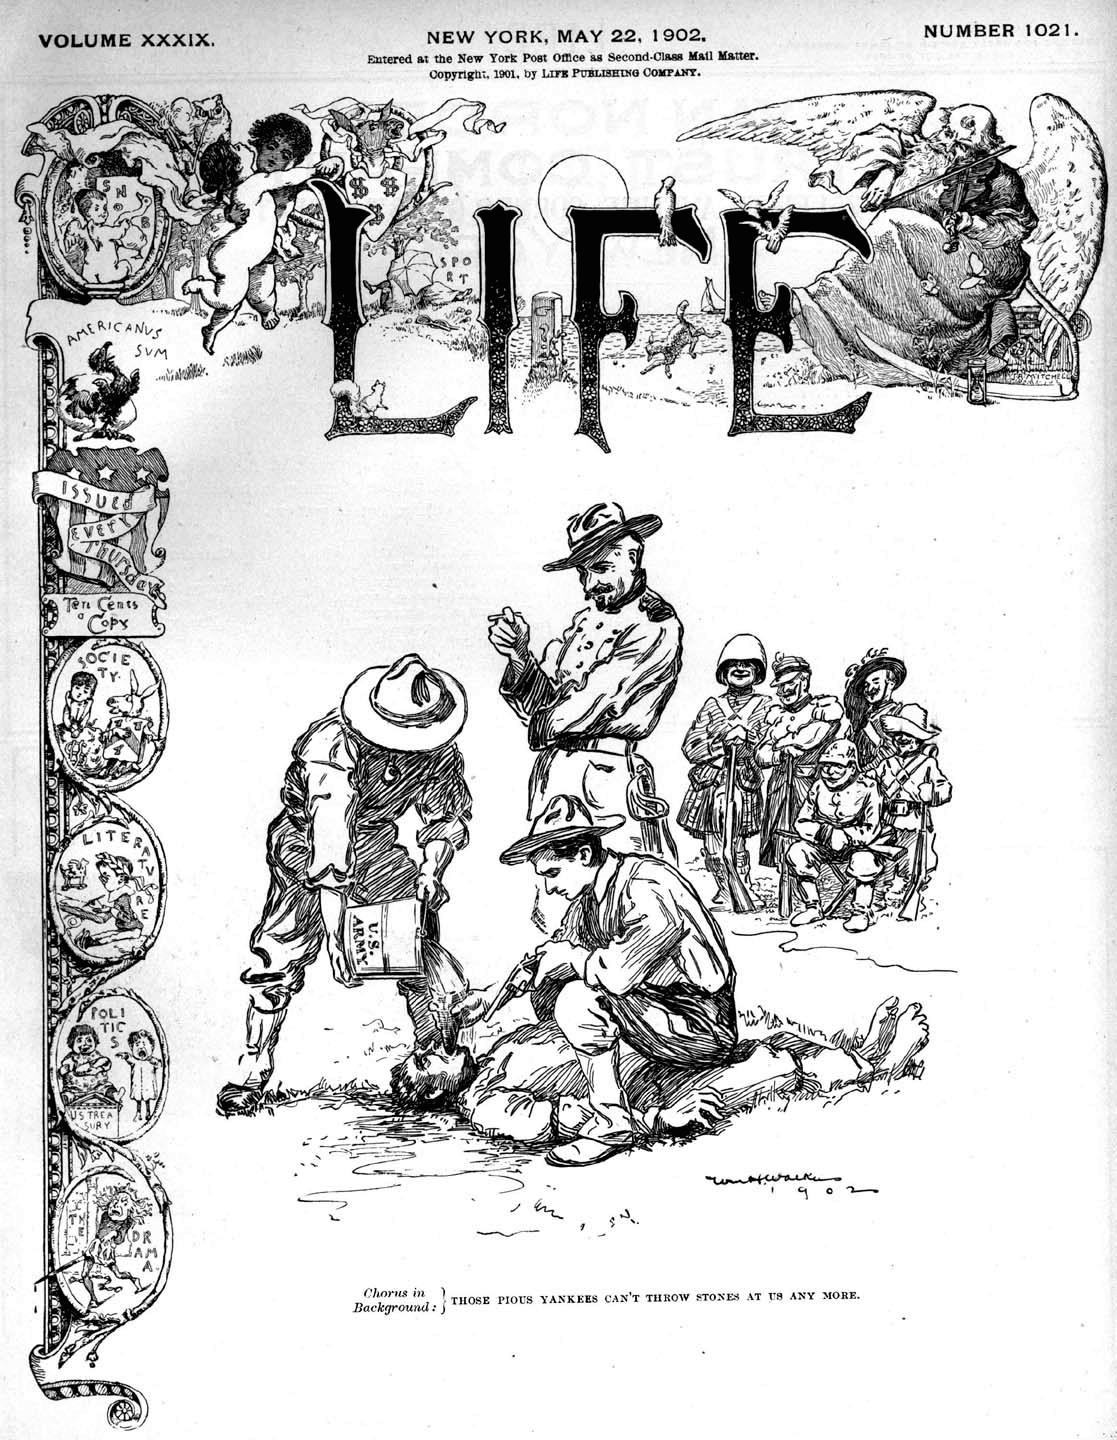 Cartoon on the May 22, 1902 cover of Life magazine depicting American application of the water cure while Europeans watch. The caption reads: